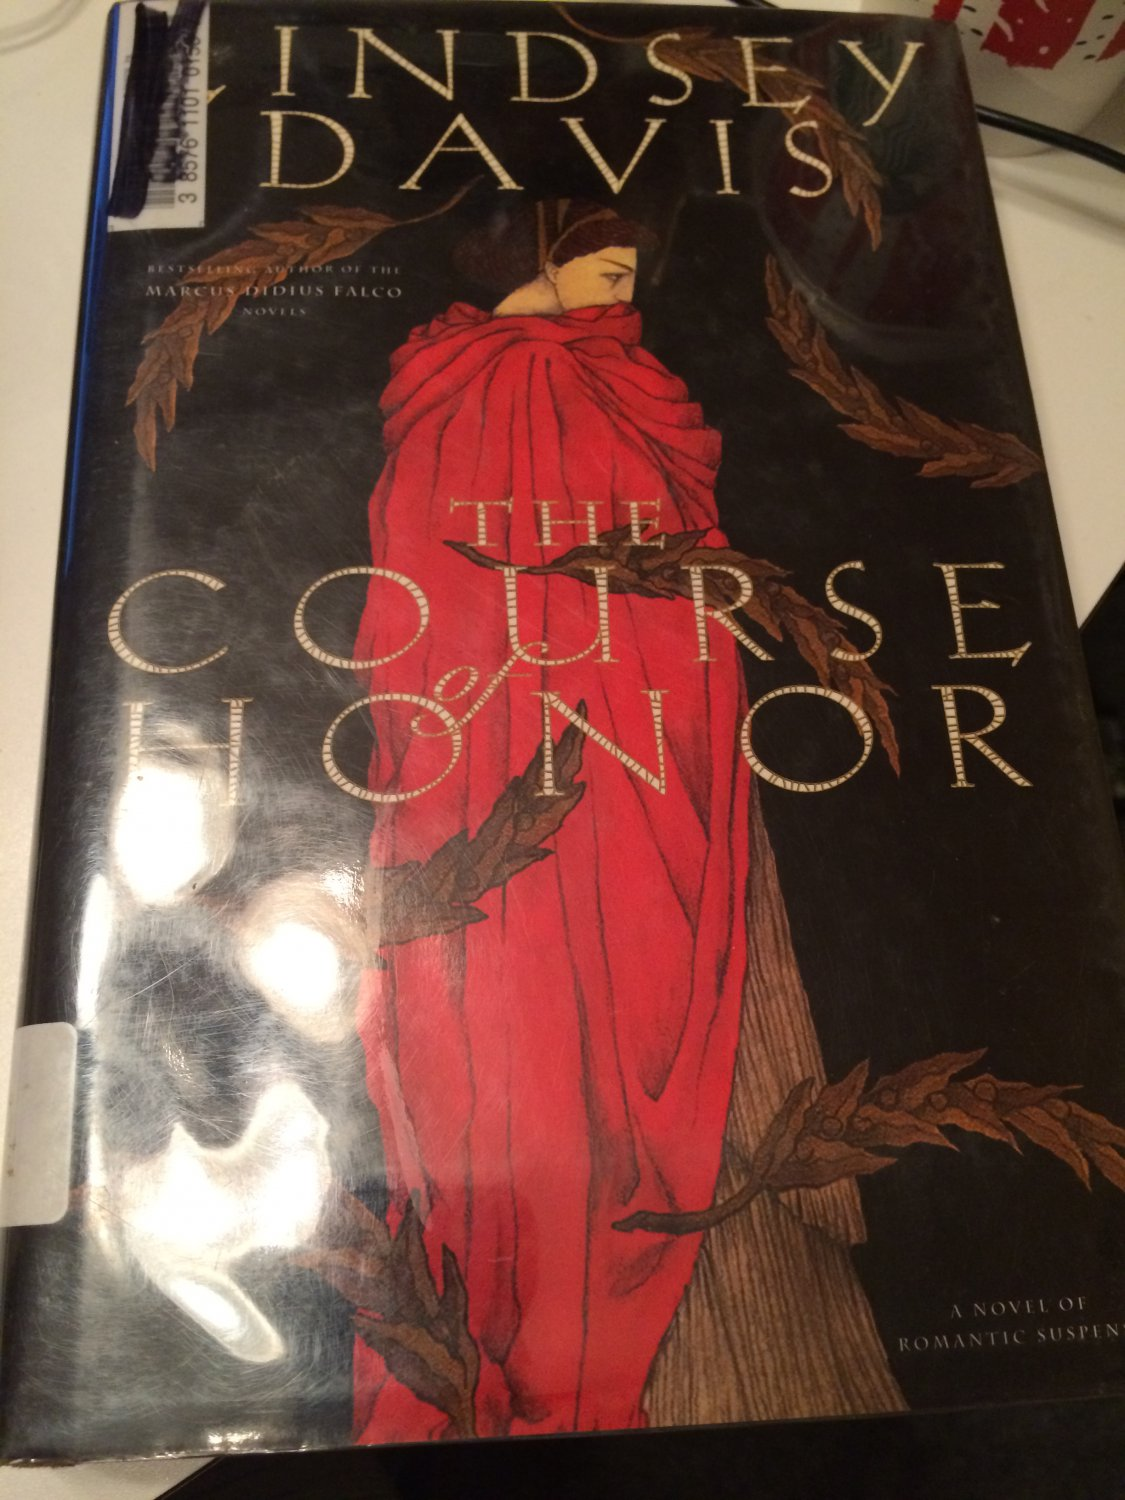 The Course of Honor - Oct 1998 by Lindsey Davis